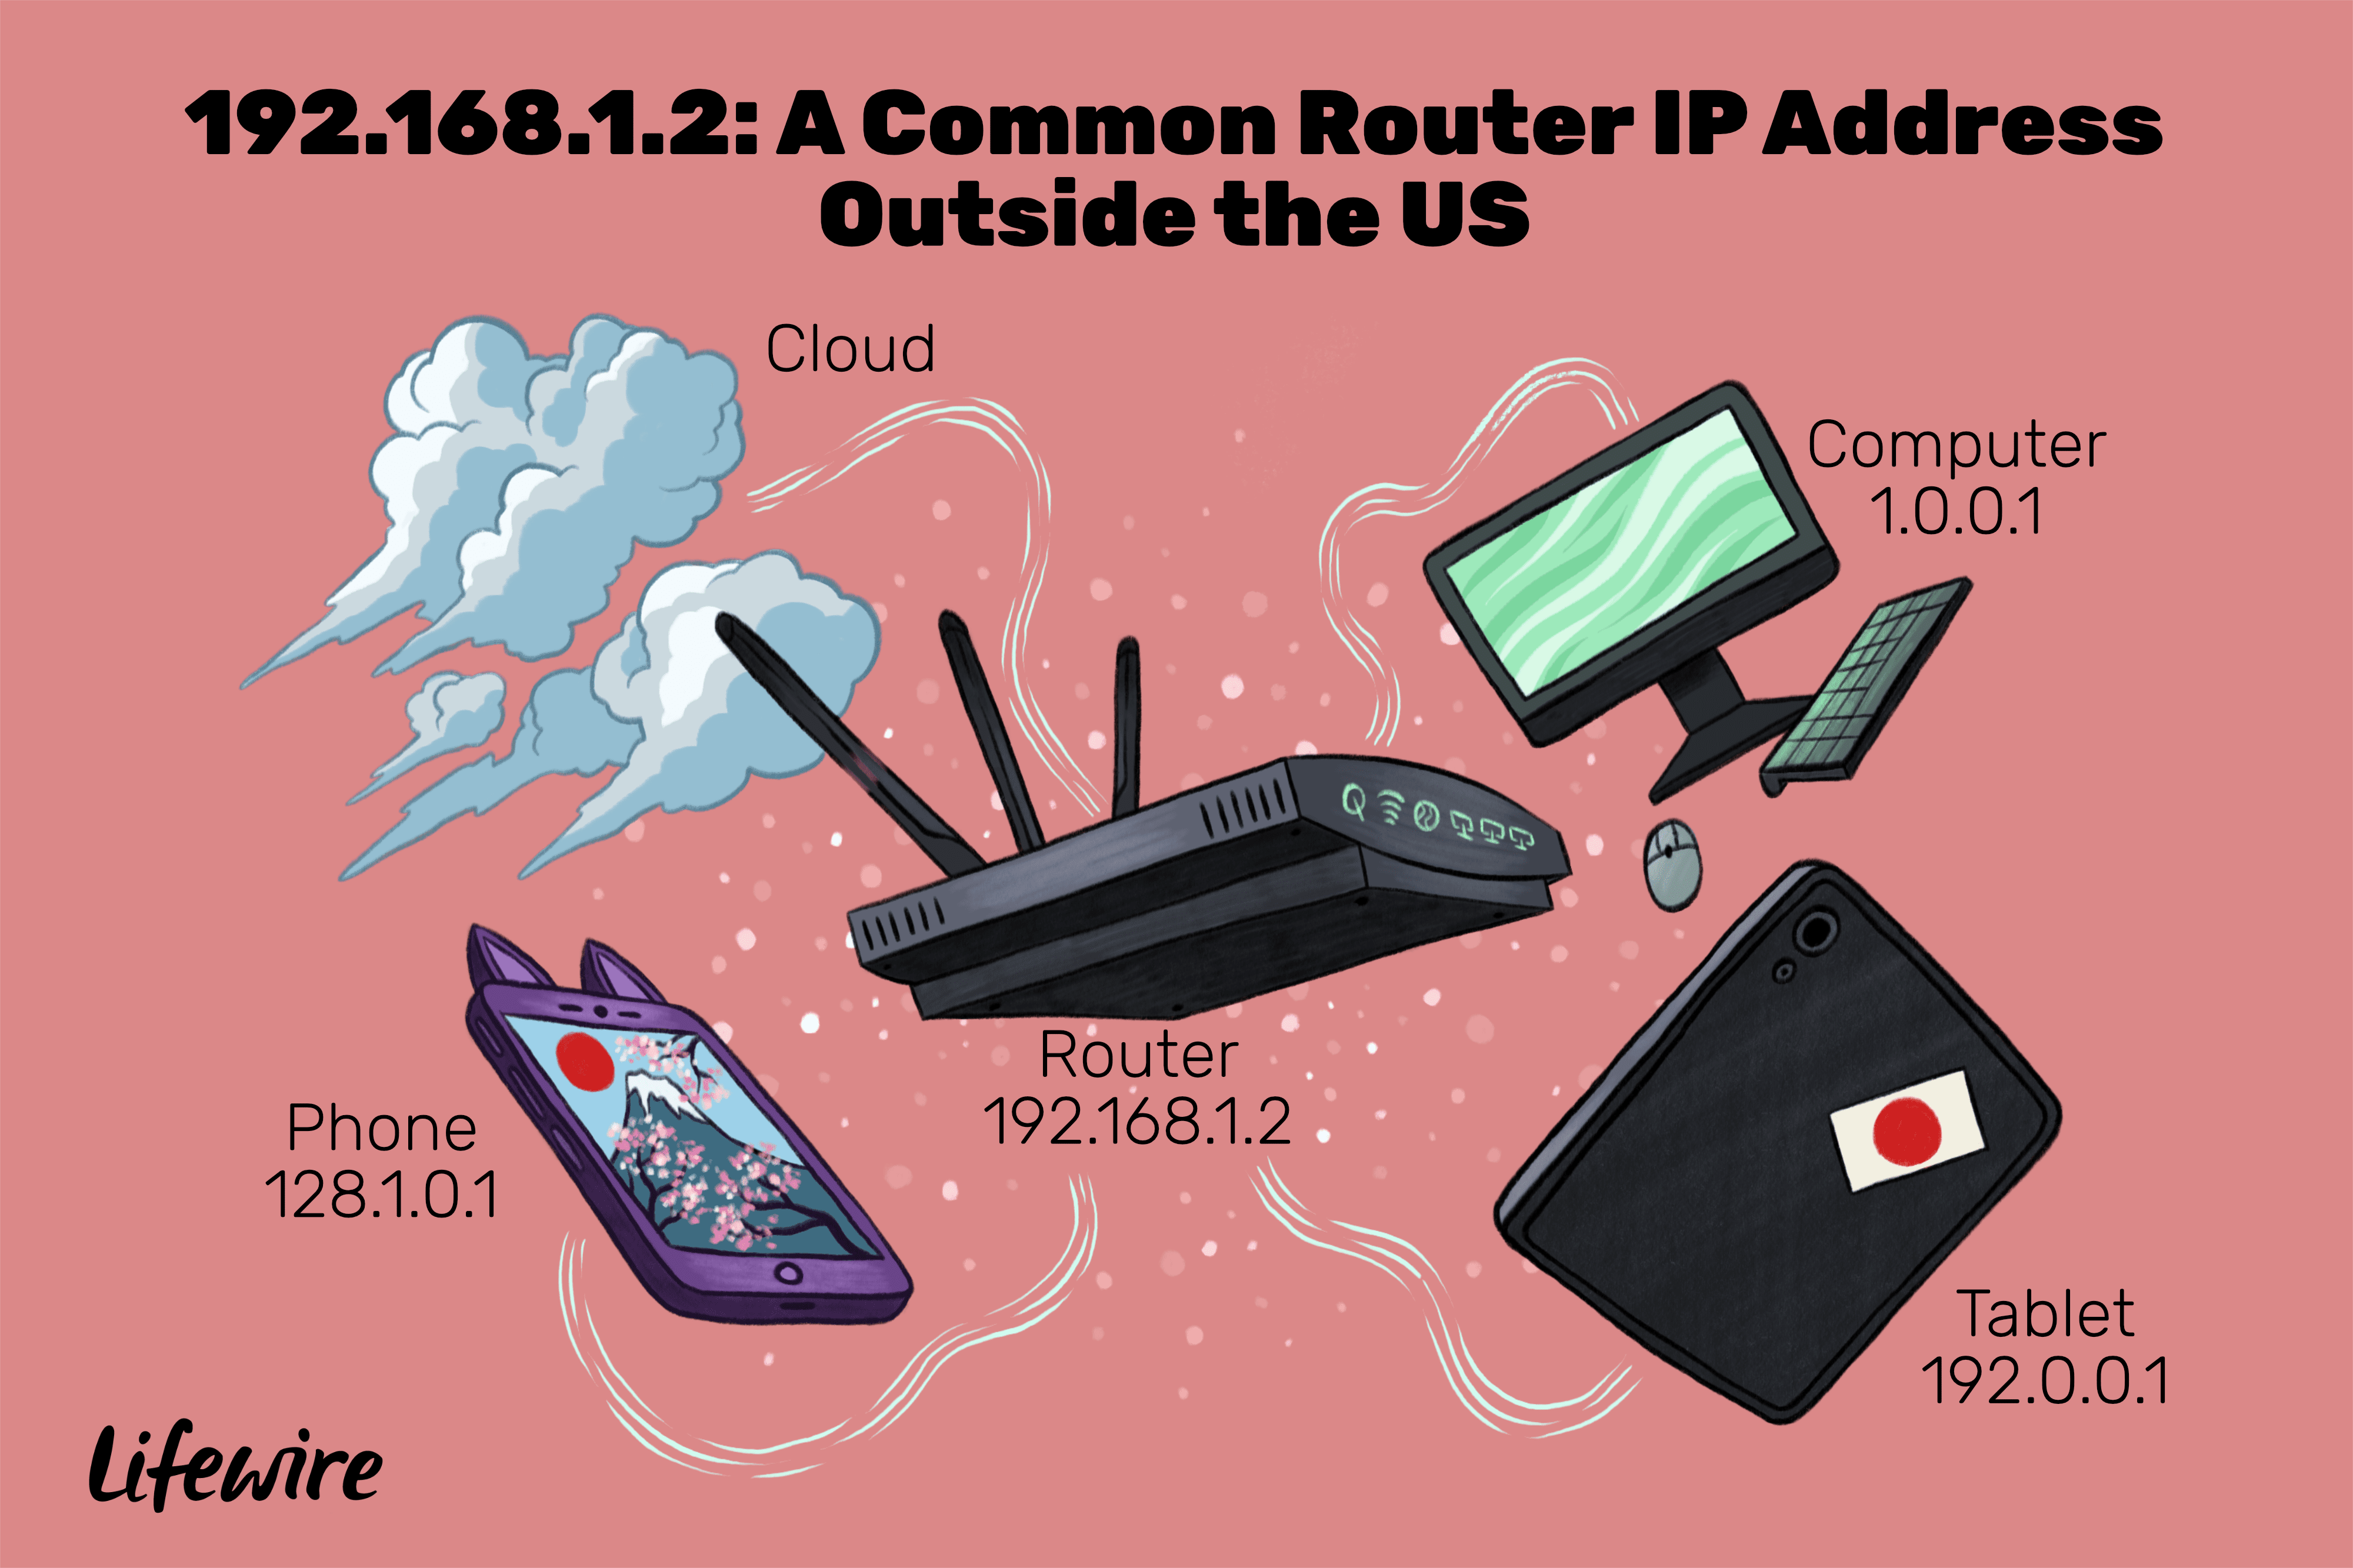 An illustration of the devices that use the IP address 192.168.1.2.